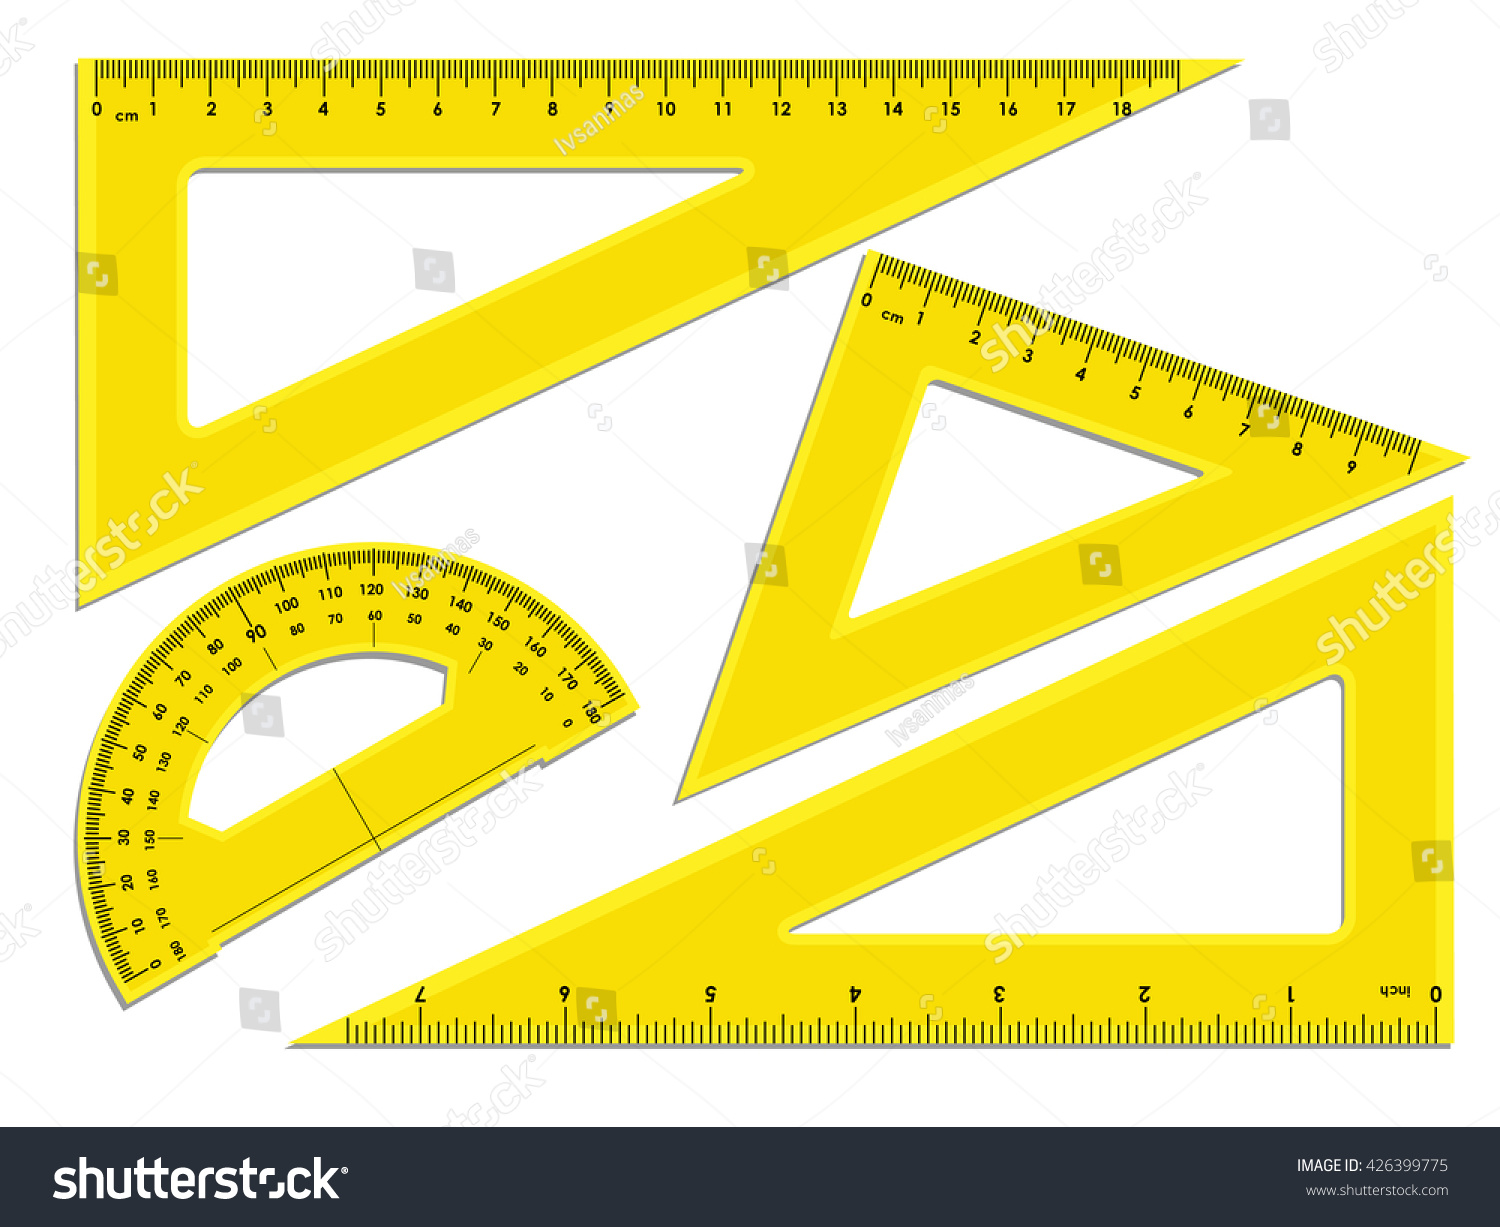 Triangle rulers protractor rulers marked centimeters stock vector triangle rulers and protractor rulers marked in centimeters and inches buycottarizona Image collections